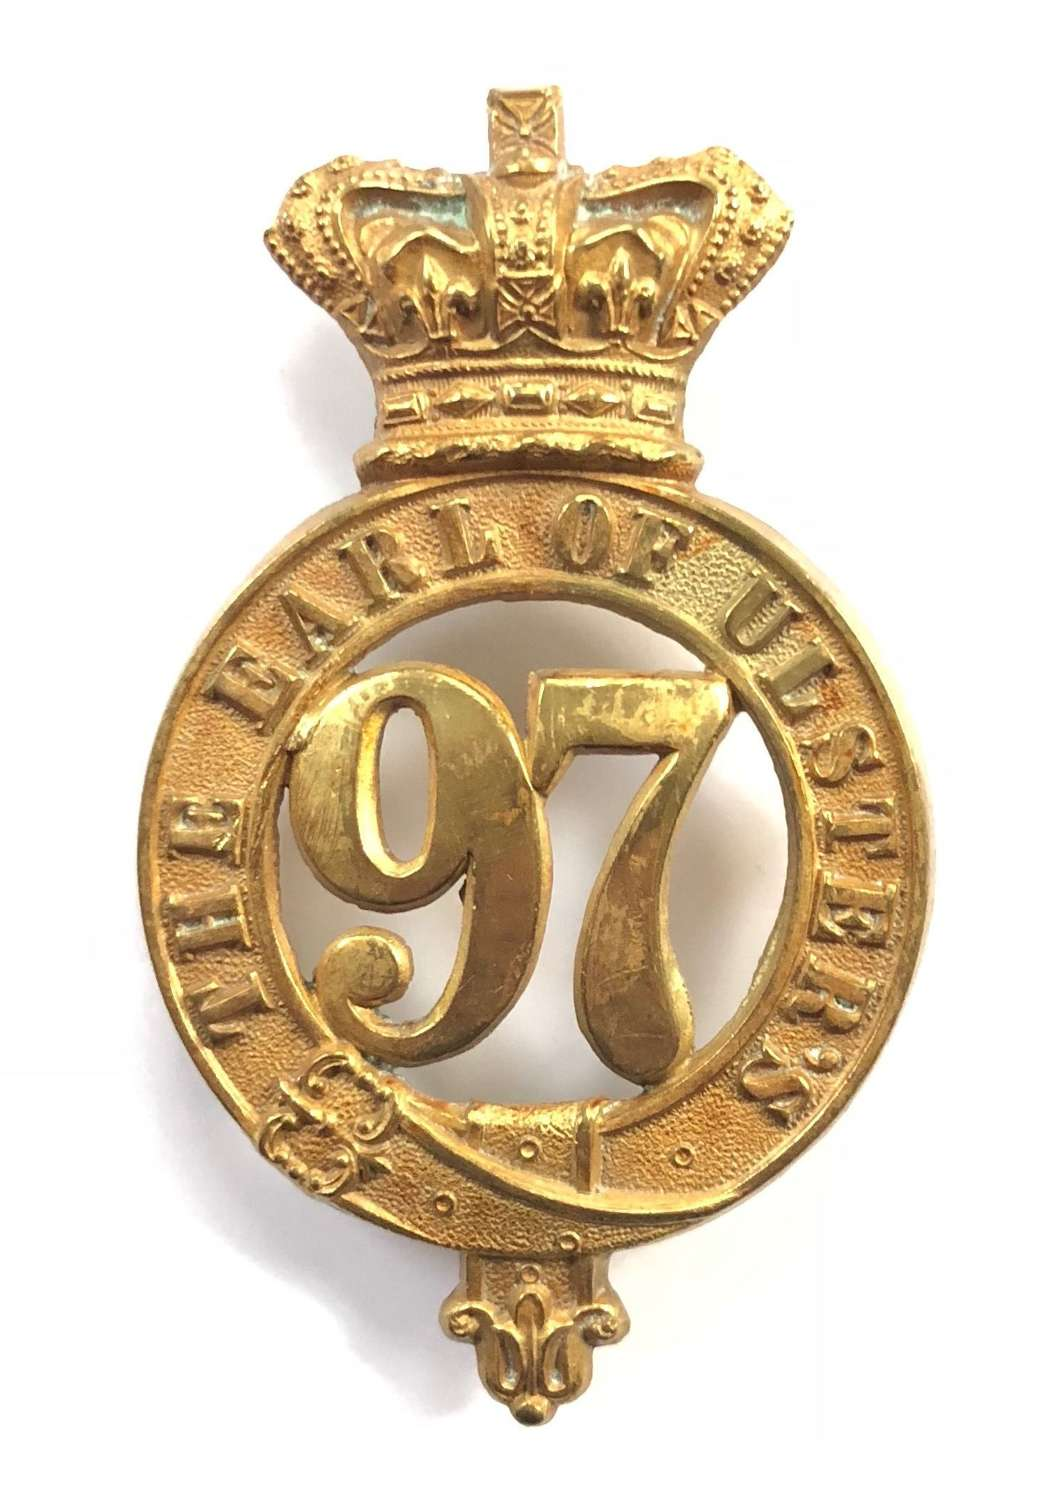 97th (Earl of Ulsters) Regiment Victorian senior NCO glengarry badge